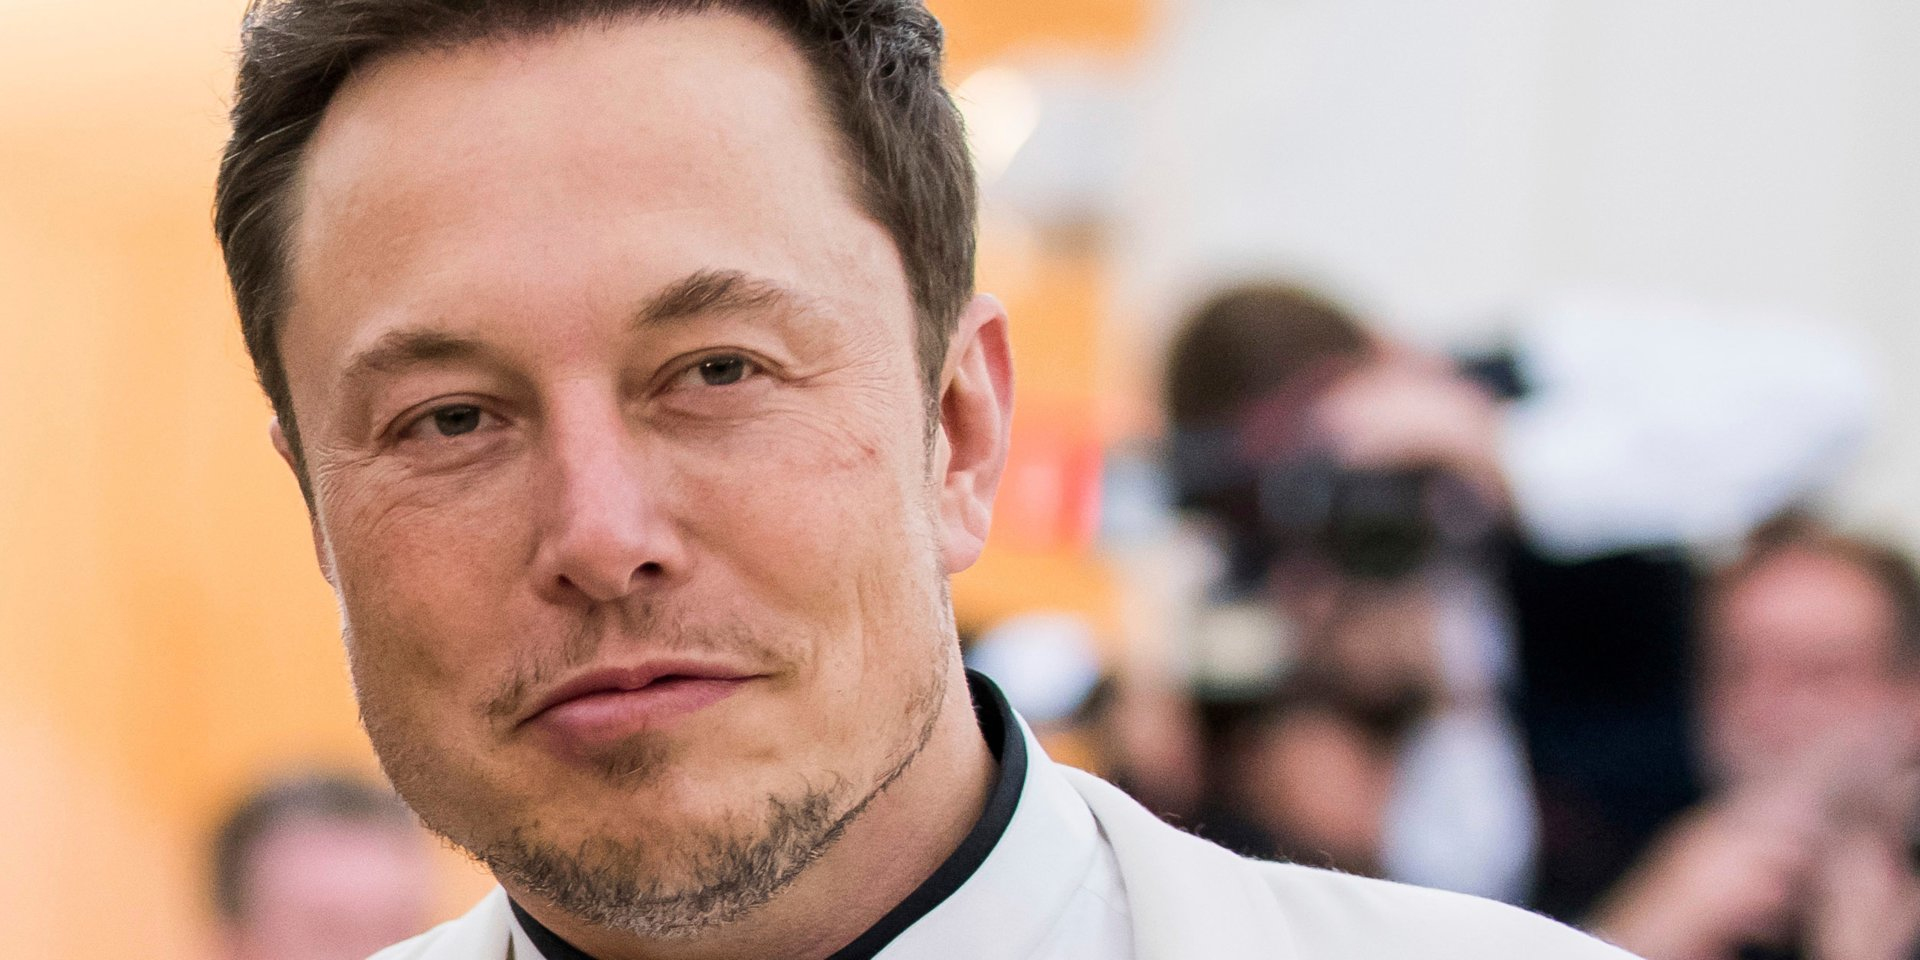 Elon Musk said in a leaked email that Tesla has a chance to break its delivery record this quarter (TSLA)